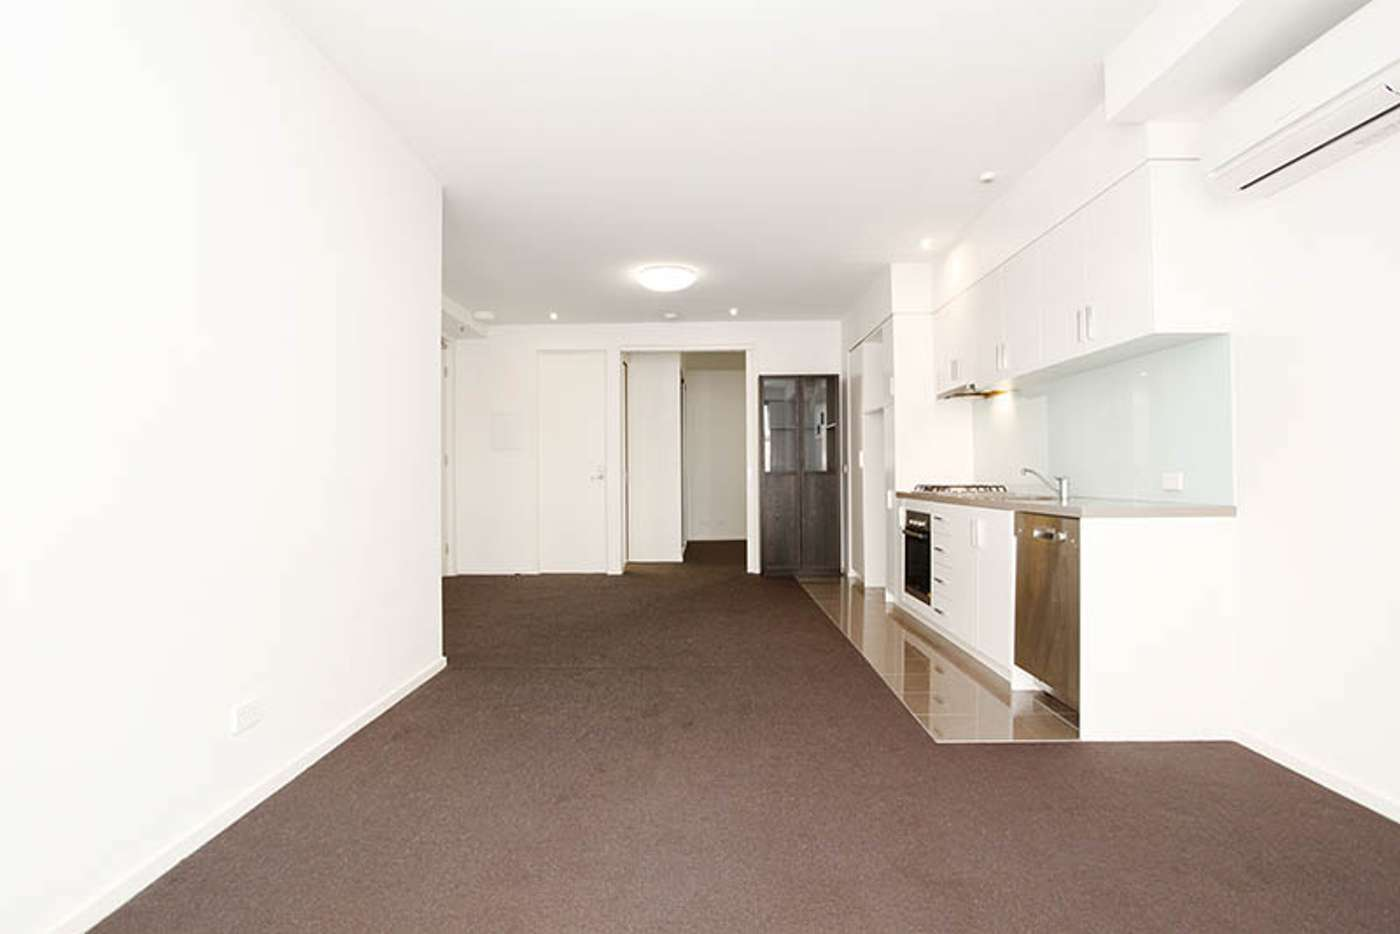 Fifth view of Homely apartment listing, 101/25 Oxford Street, North Melbourne VIC 3051